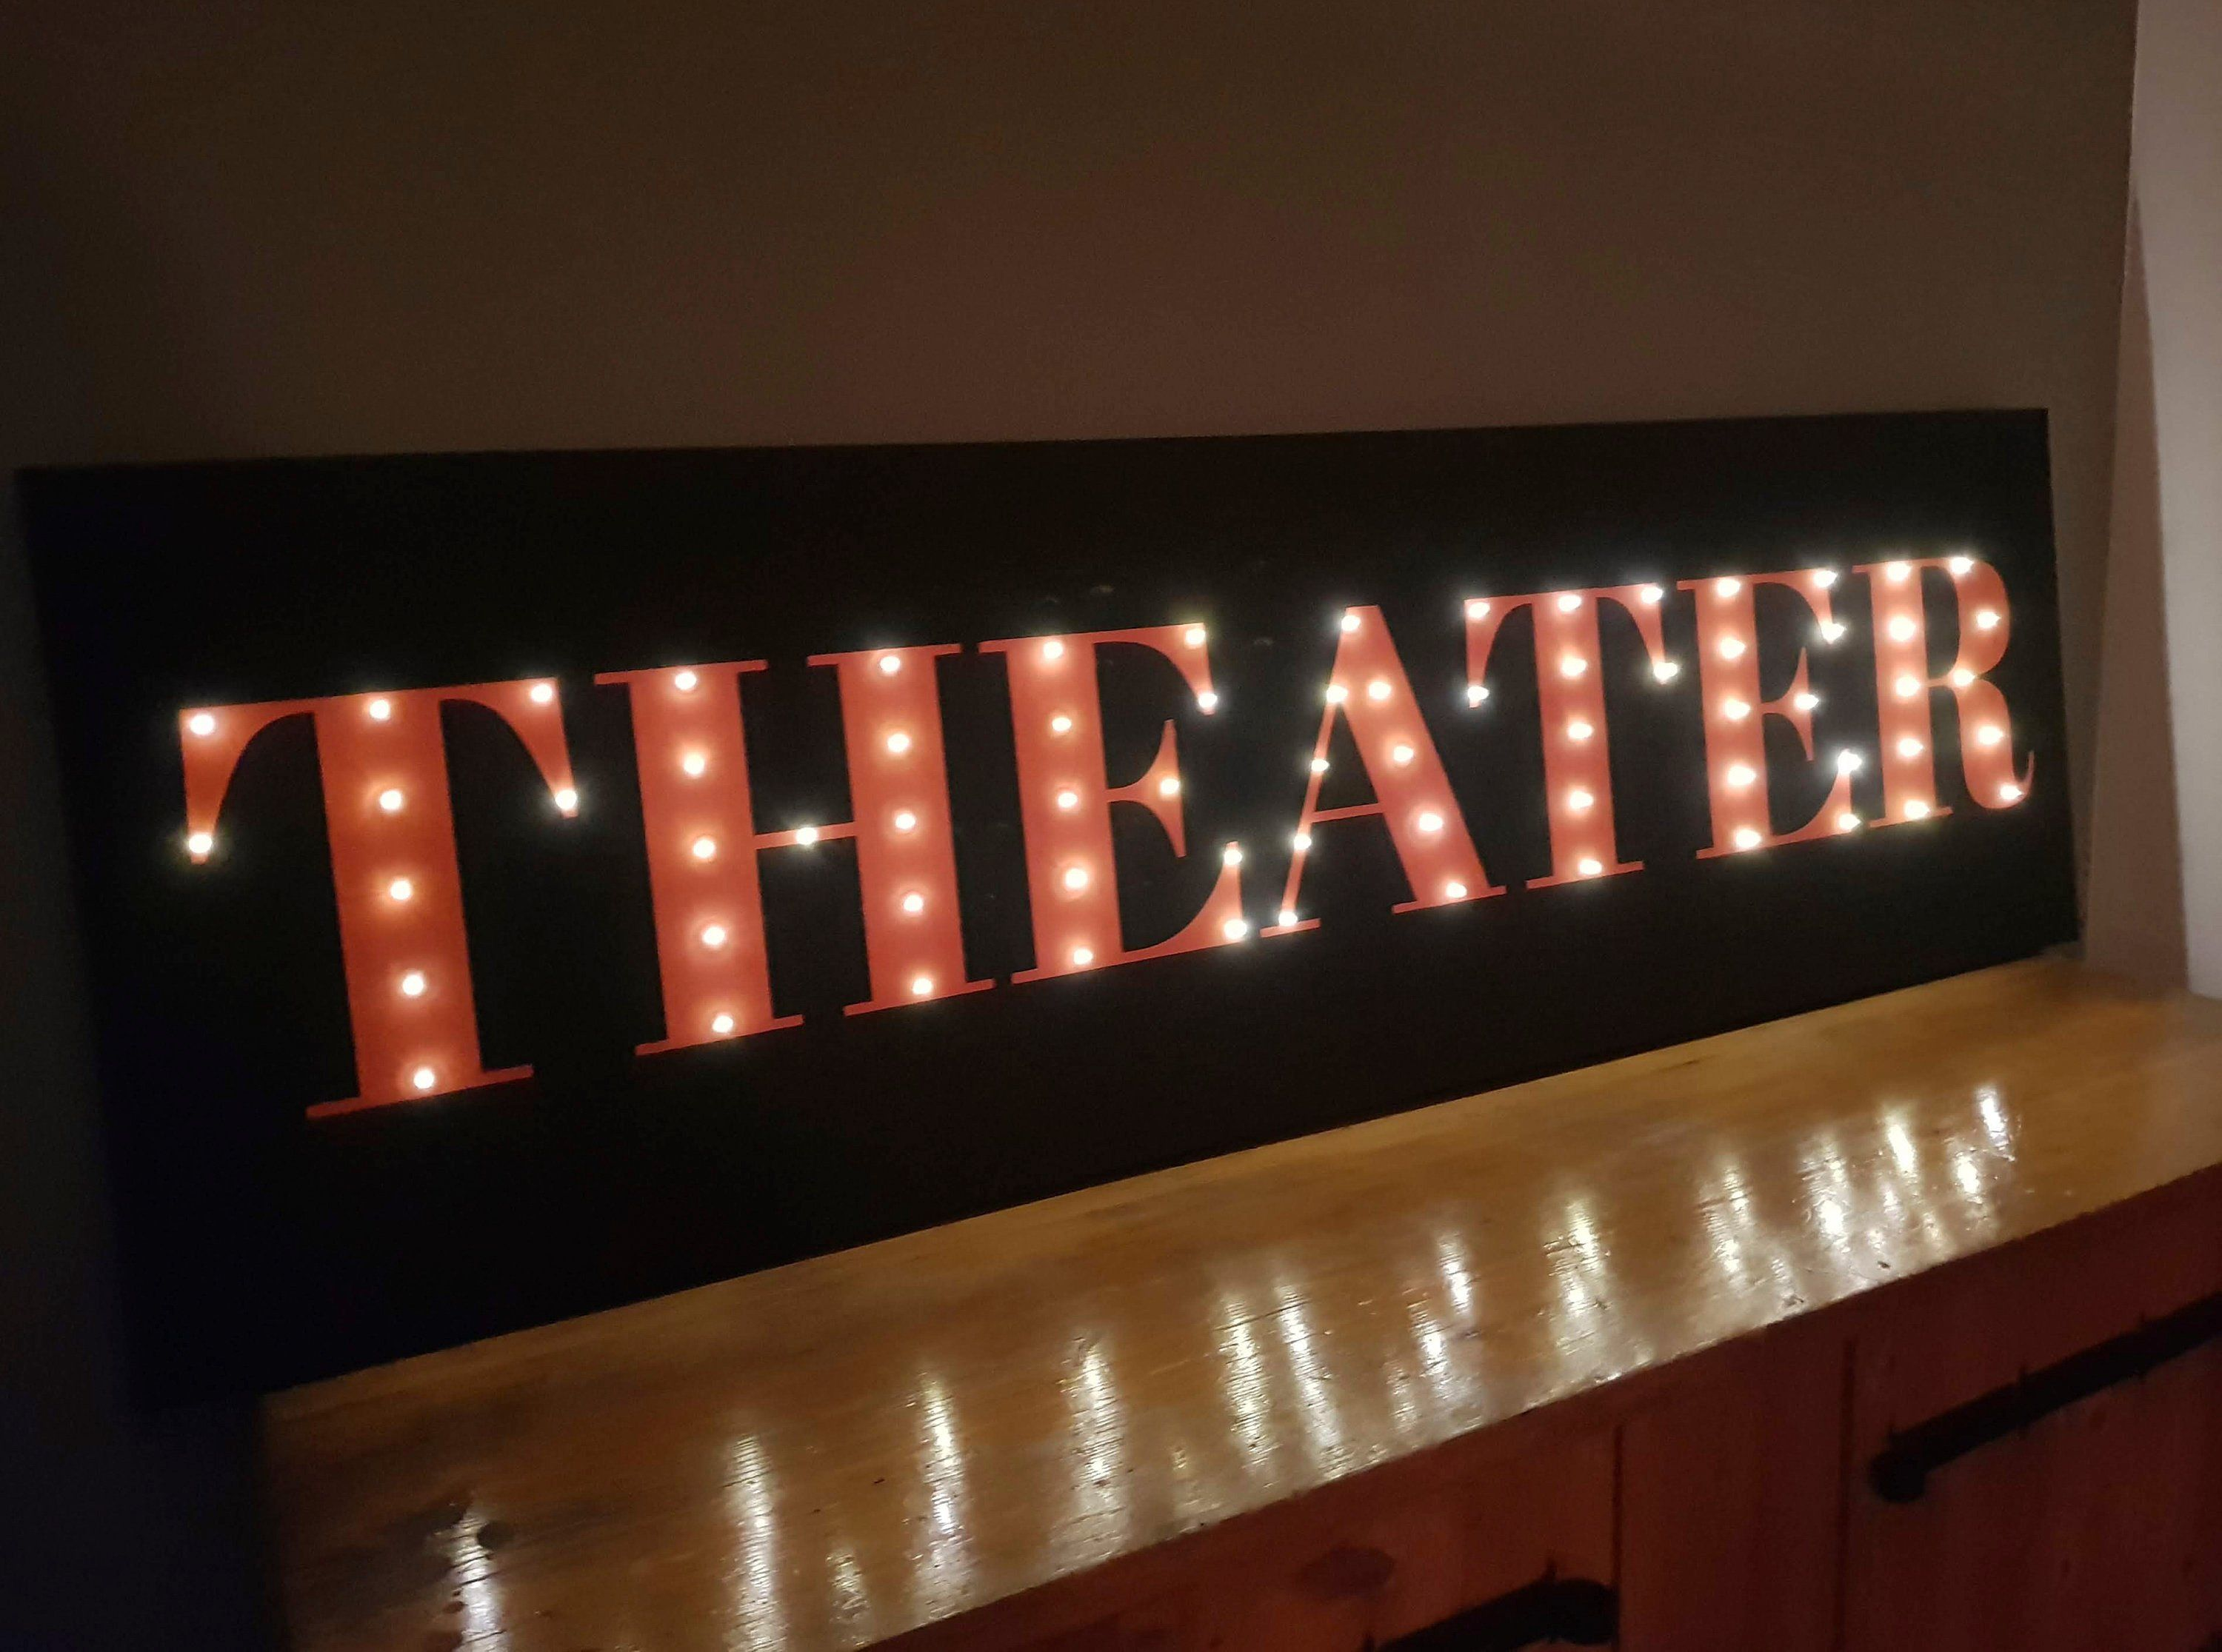 Huge Theater Sign Home Theater Decor Light Up Theater Sign Etsy In 2020 Light Up Signs Home Theater Decor Light Up Letters